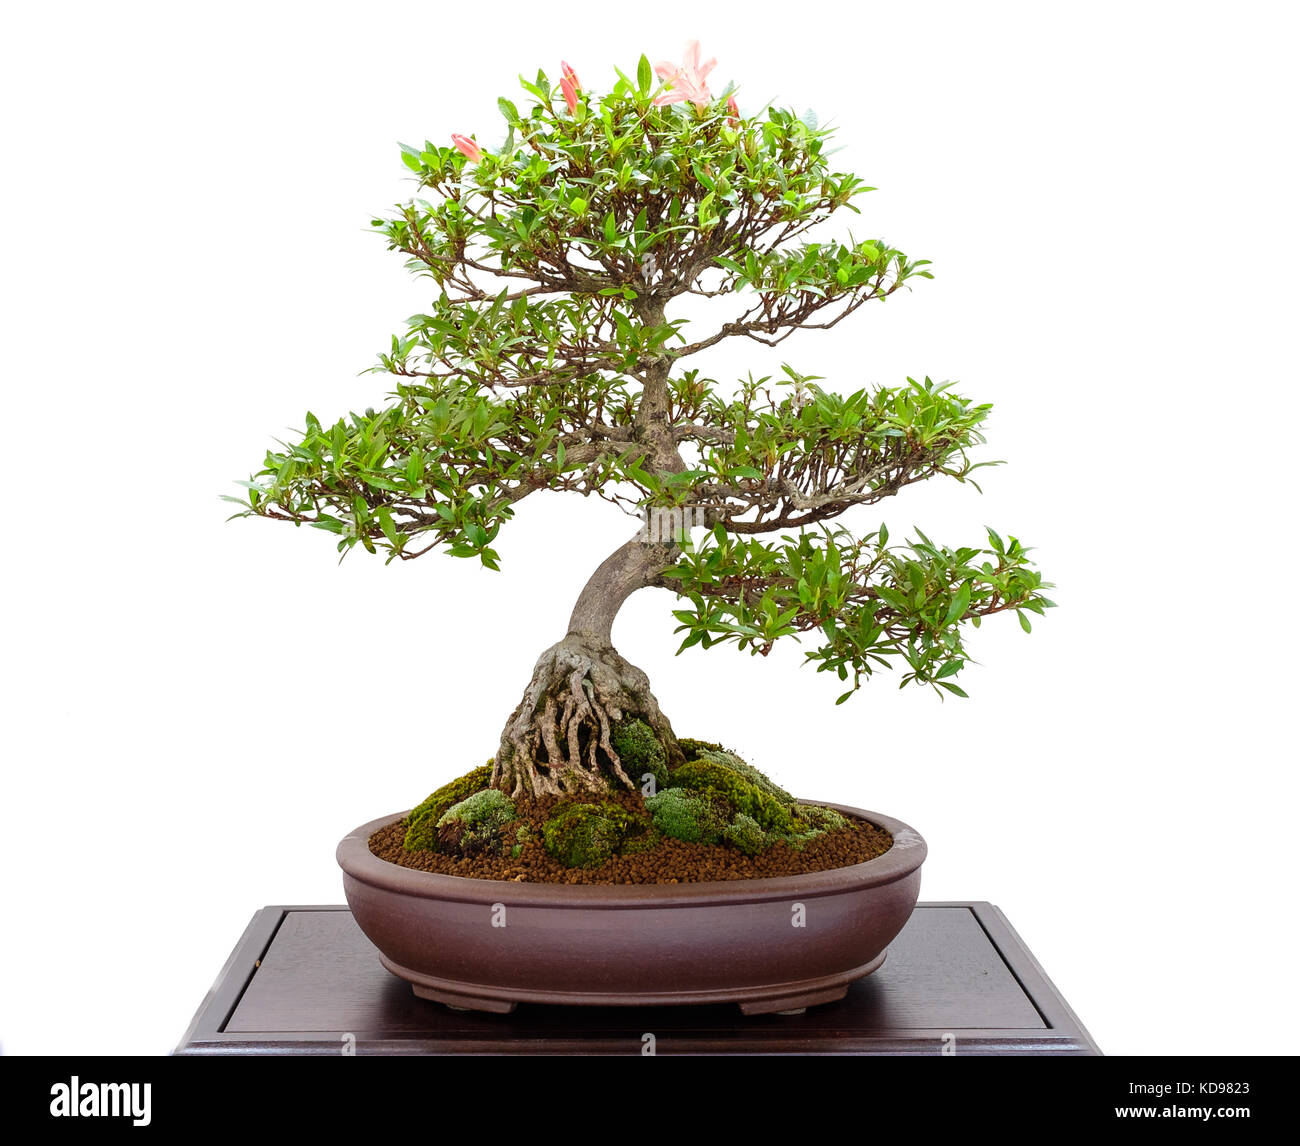 Bonsai Tree Azalea Rhododendron Indicum With Pink Flowers Stock